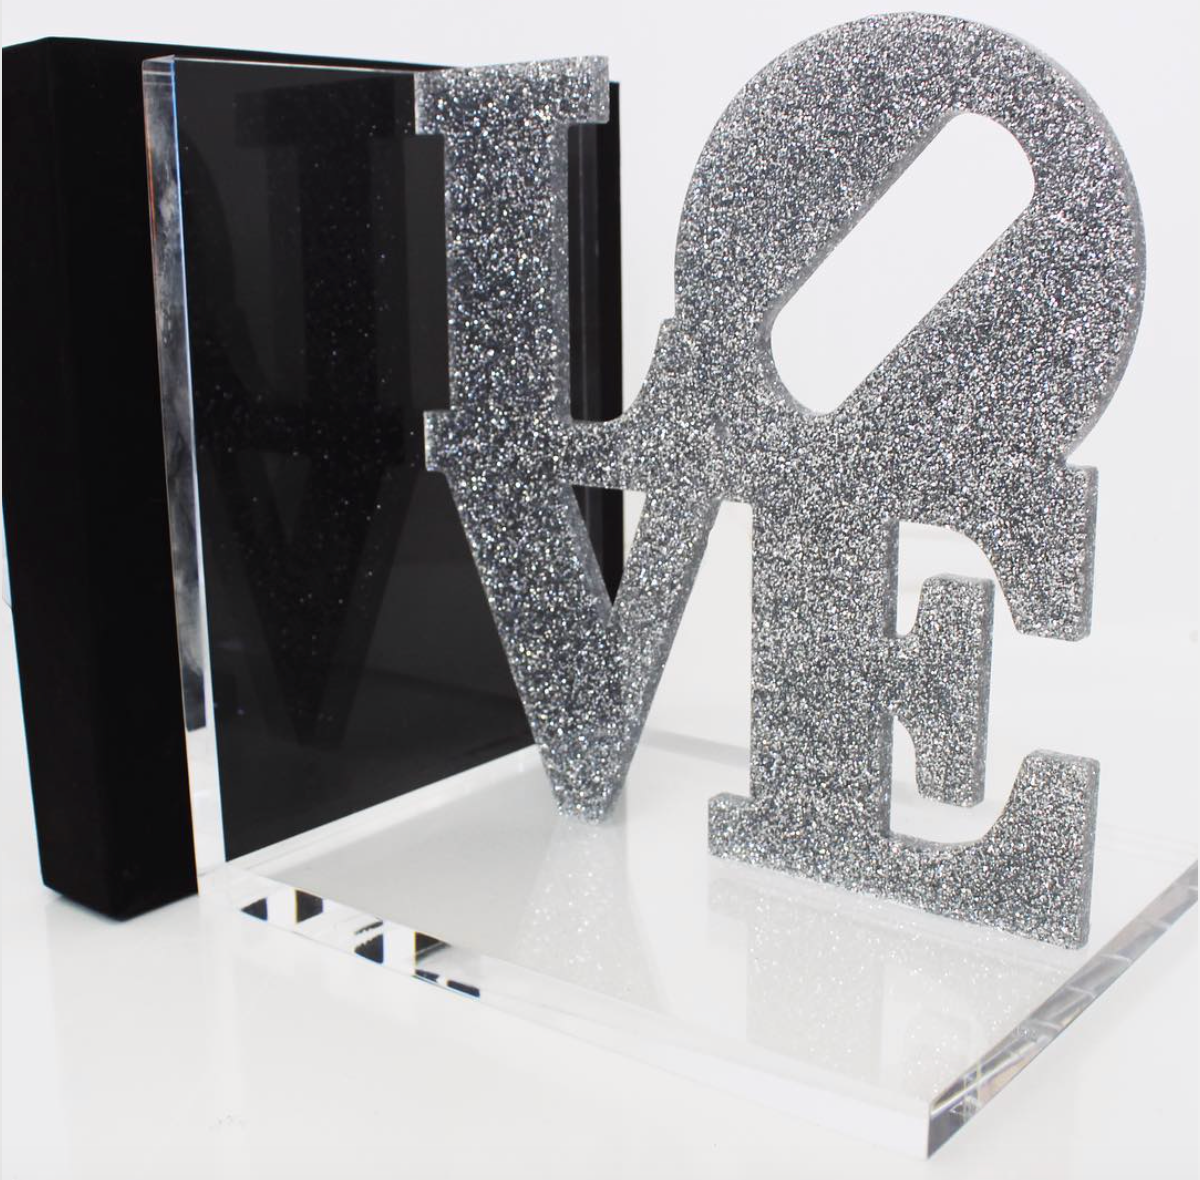 LOVE BOOKENDS - Out of the Box NY Gifts